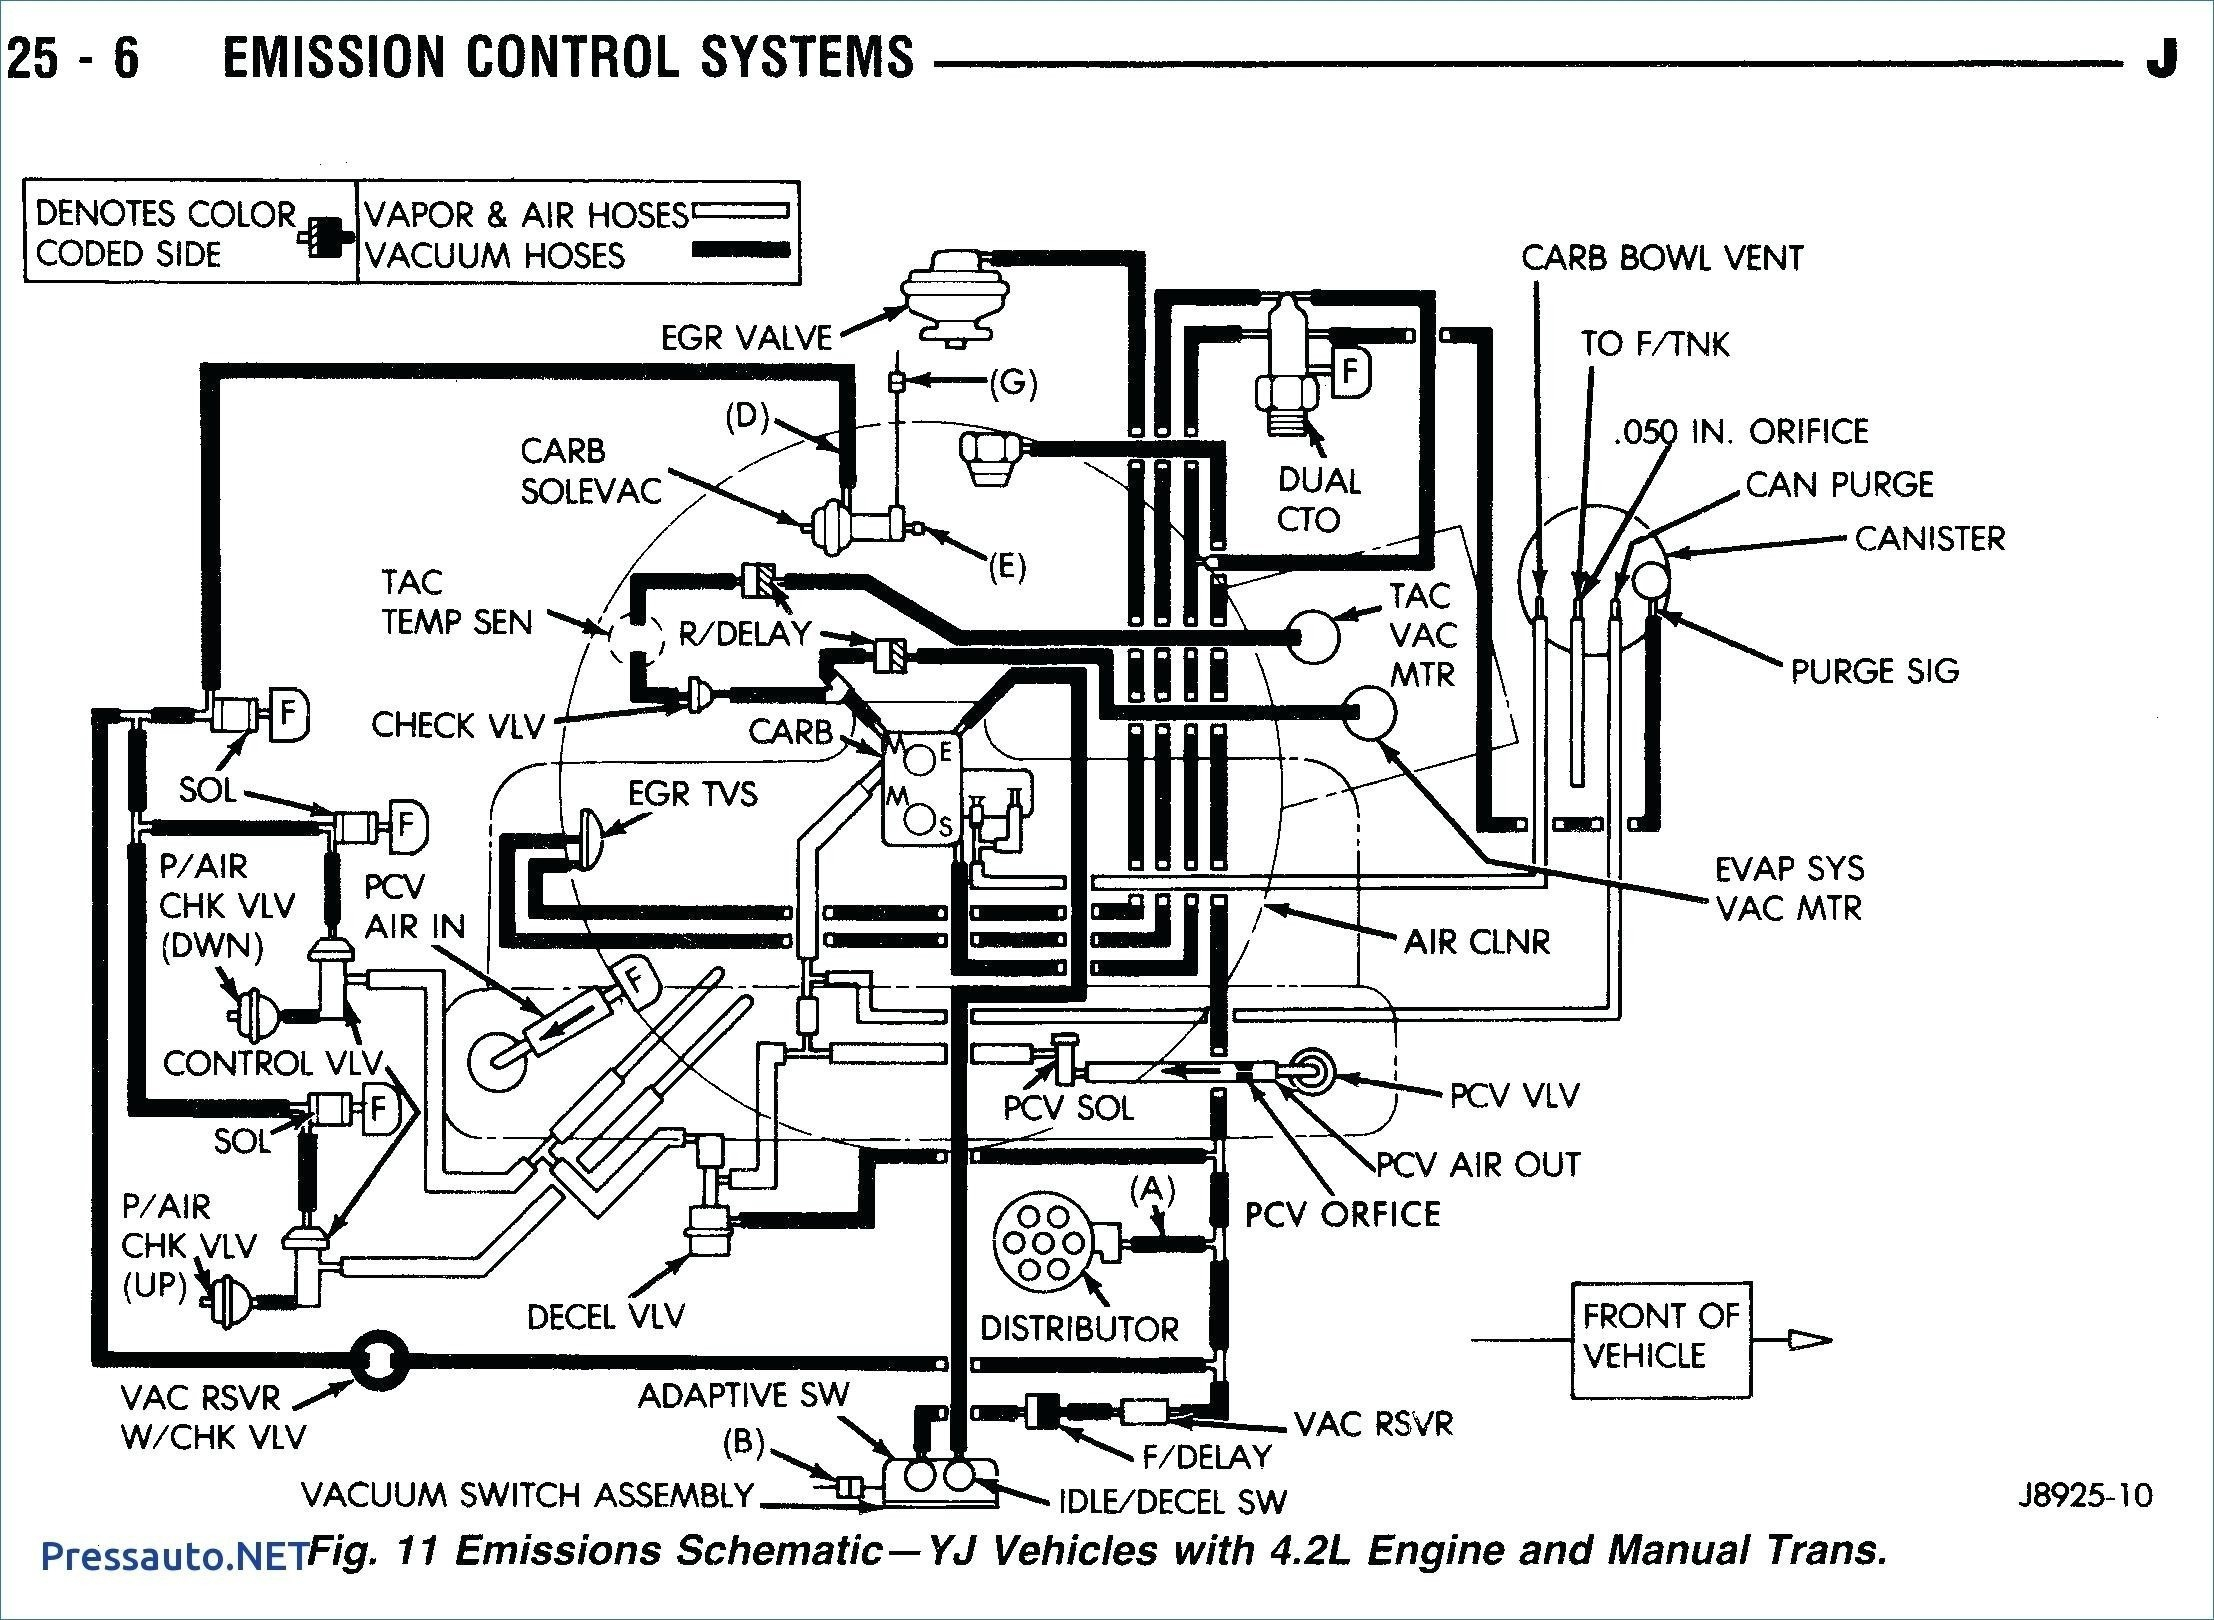 1998 Jeep Cherokee Wiring Diagrams Pdf - Wiring Diagram